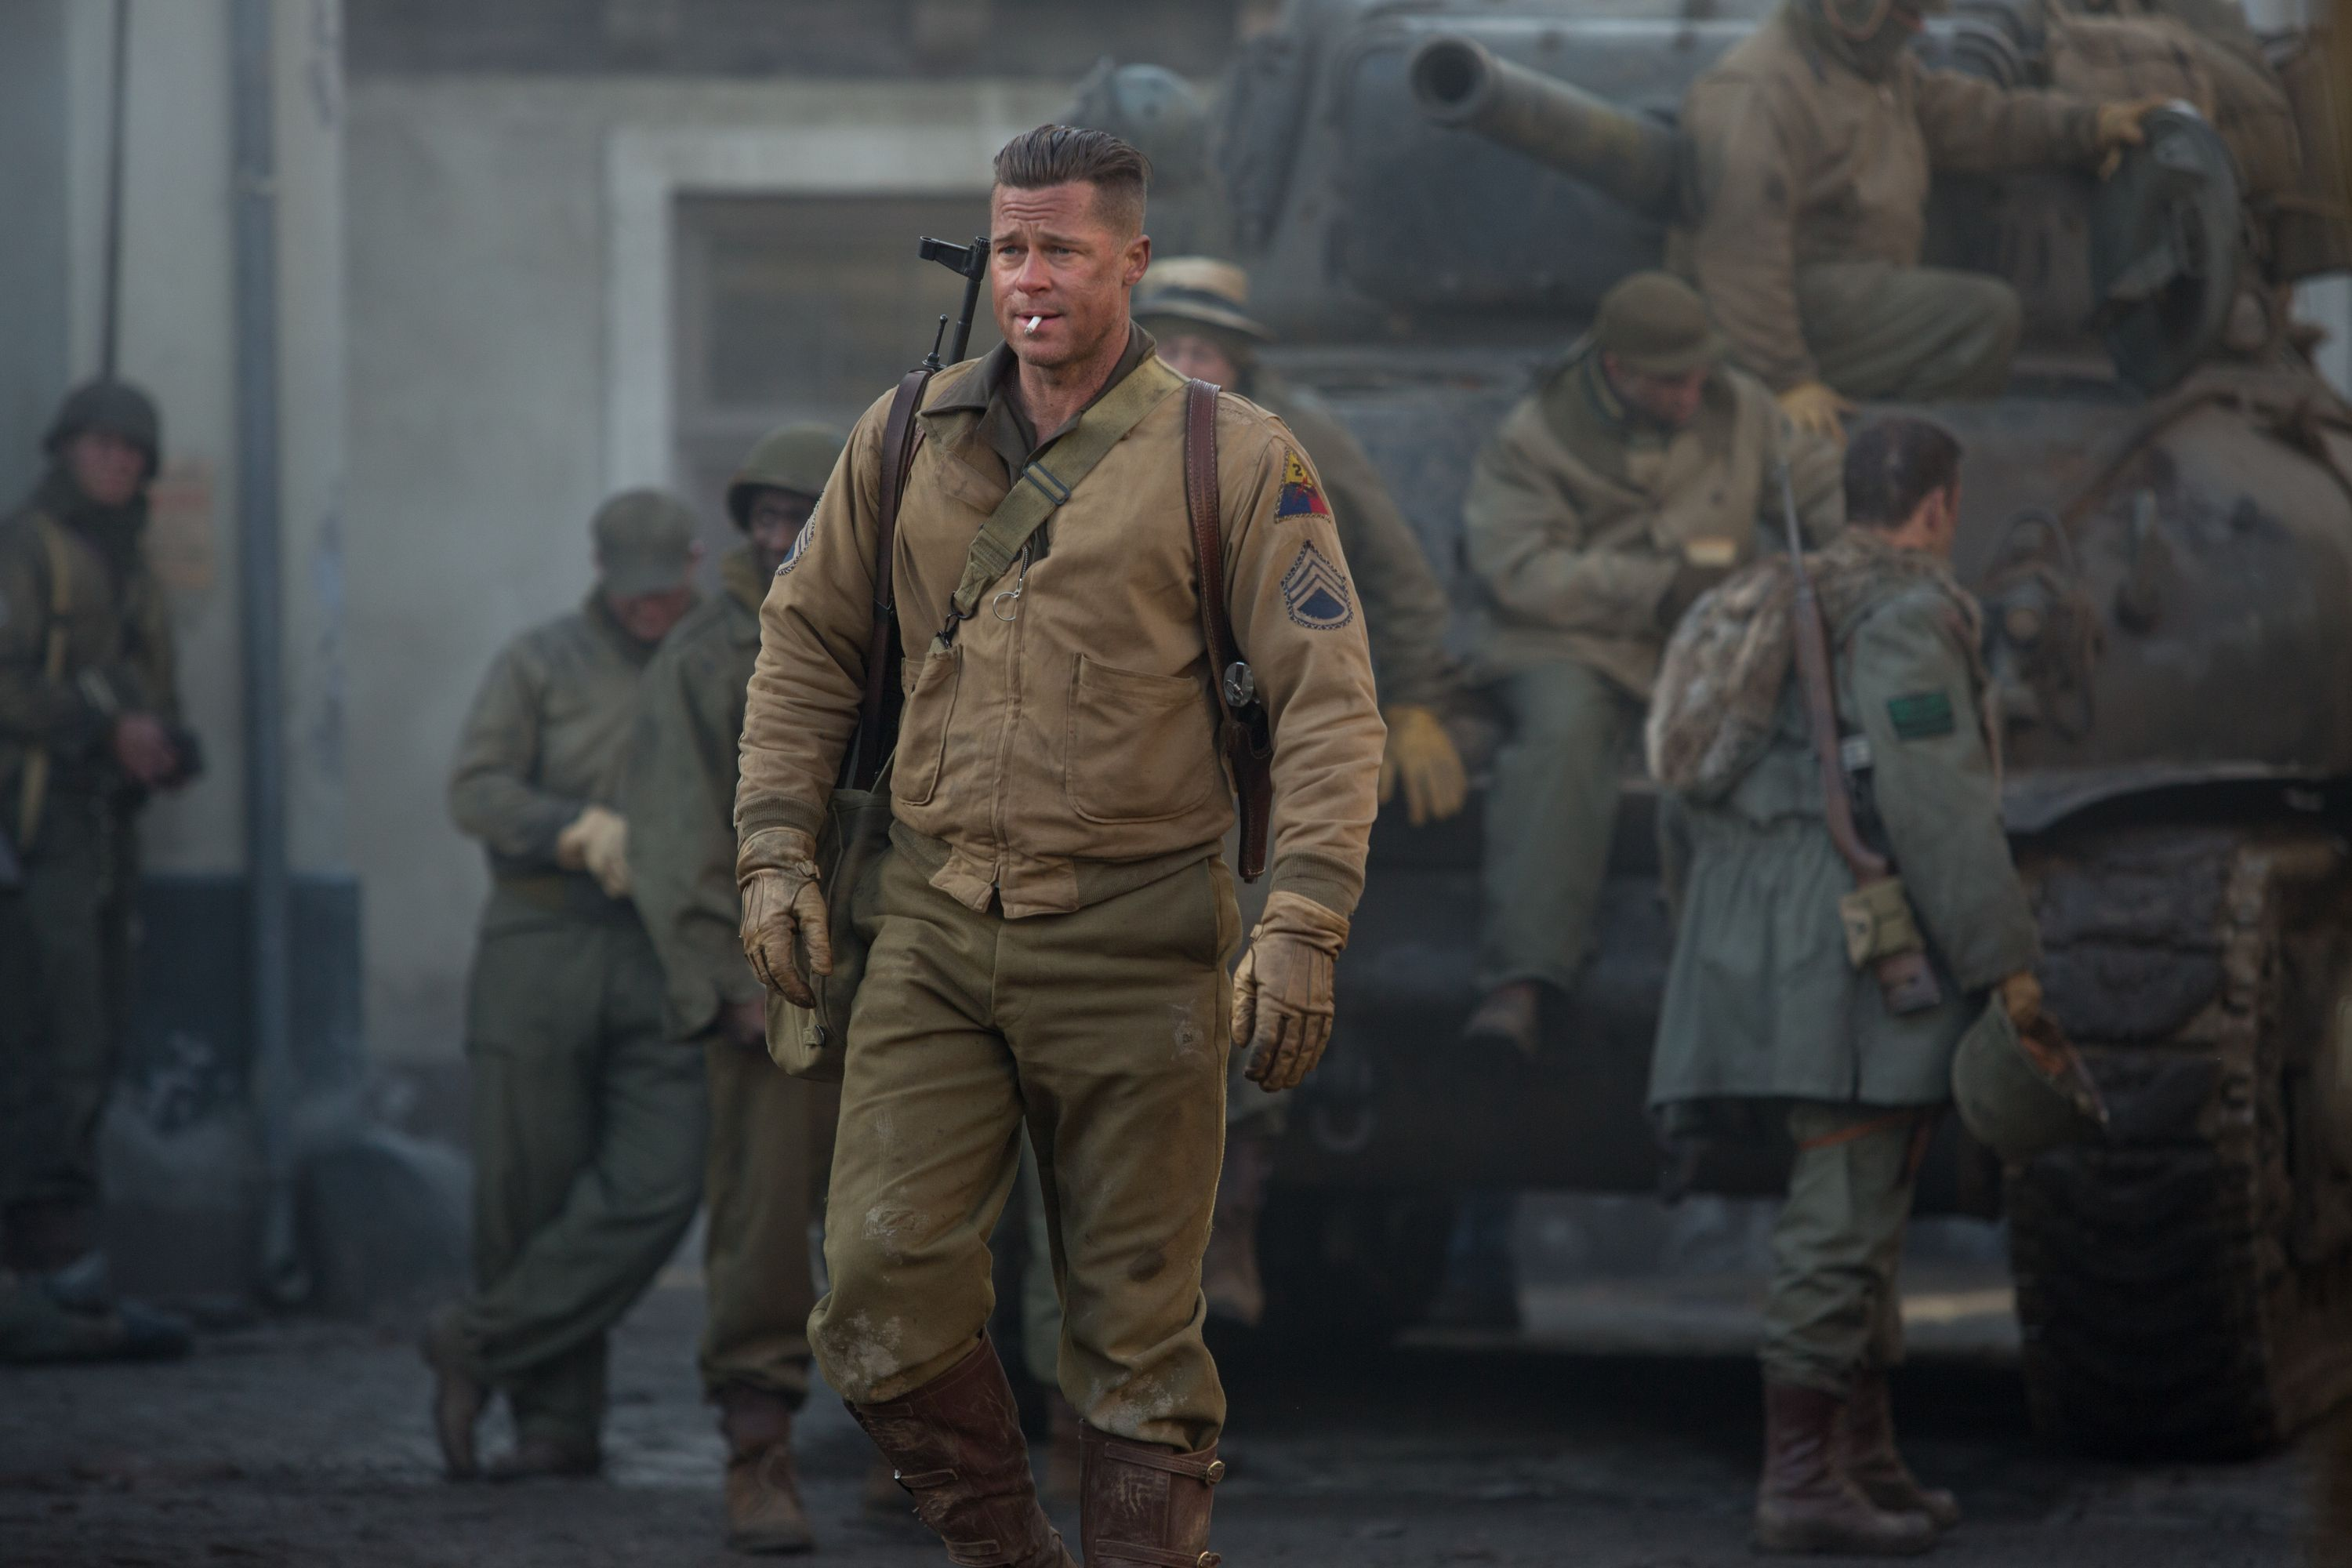 New FURY Images Featuring Brad Pitt Shia LaBeouf And Logan - New official trailer fury starring brad pitt